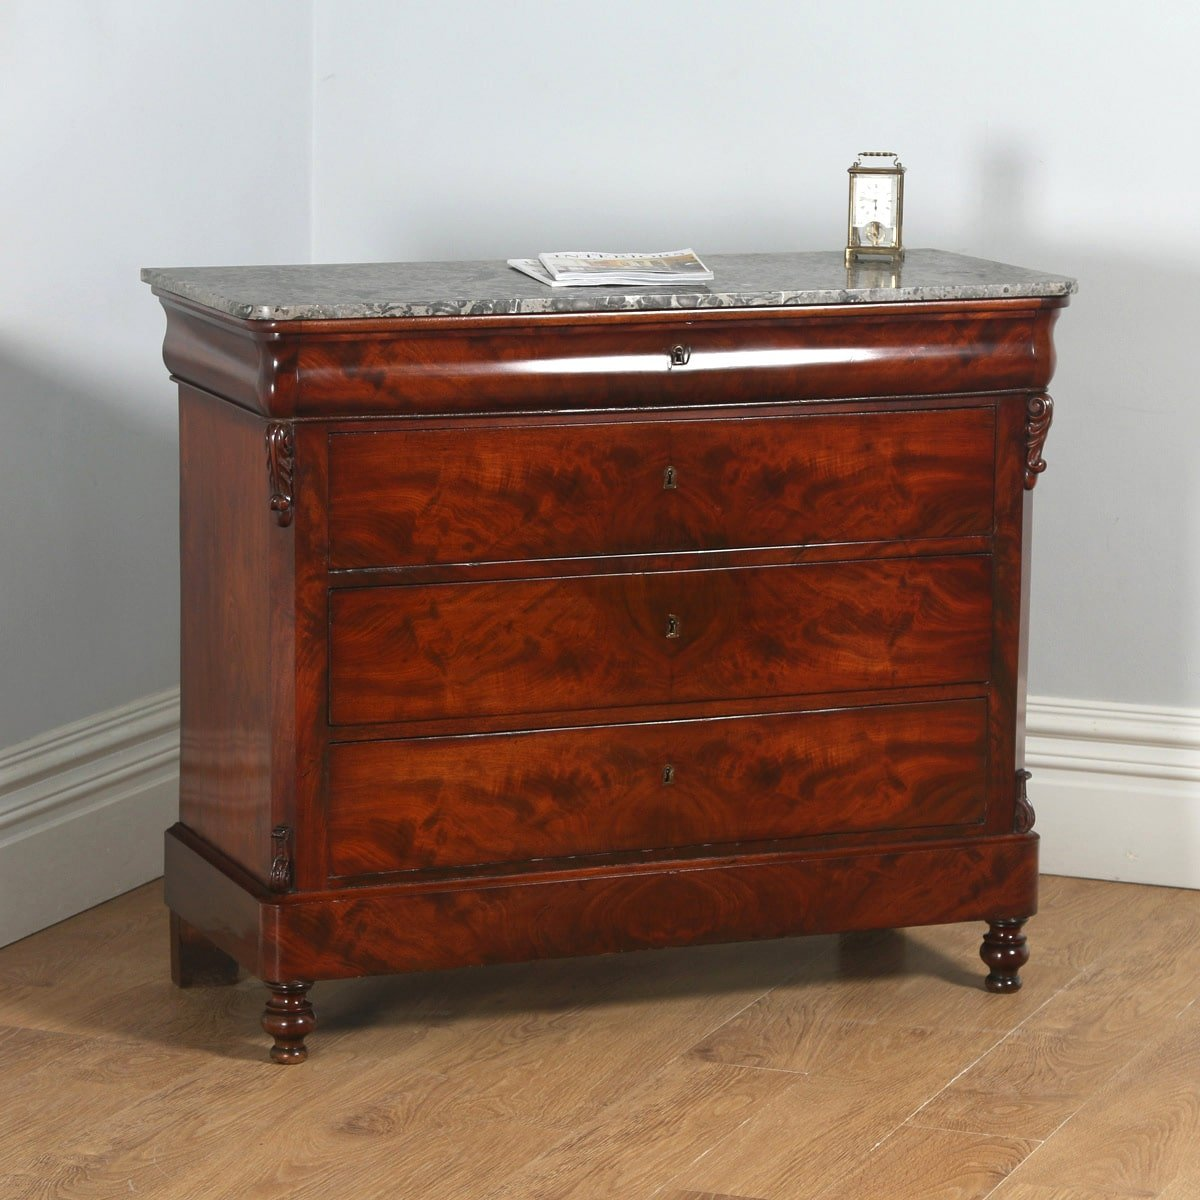 Antique French Louis Philippe Flame Mahogany & Marble Chest of Drawers (Circa 1850) - yolagray.com